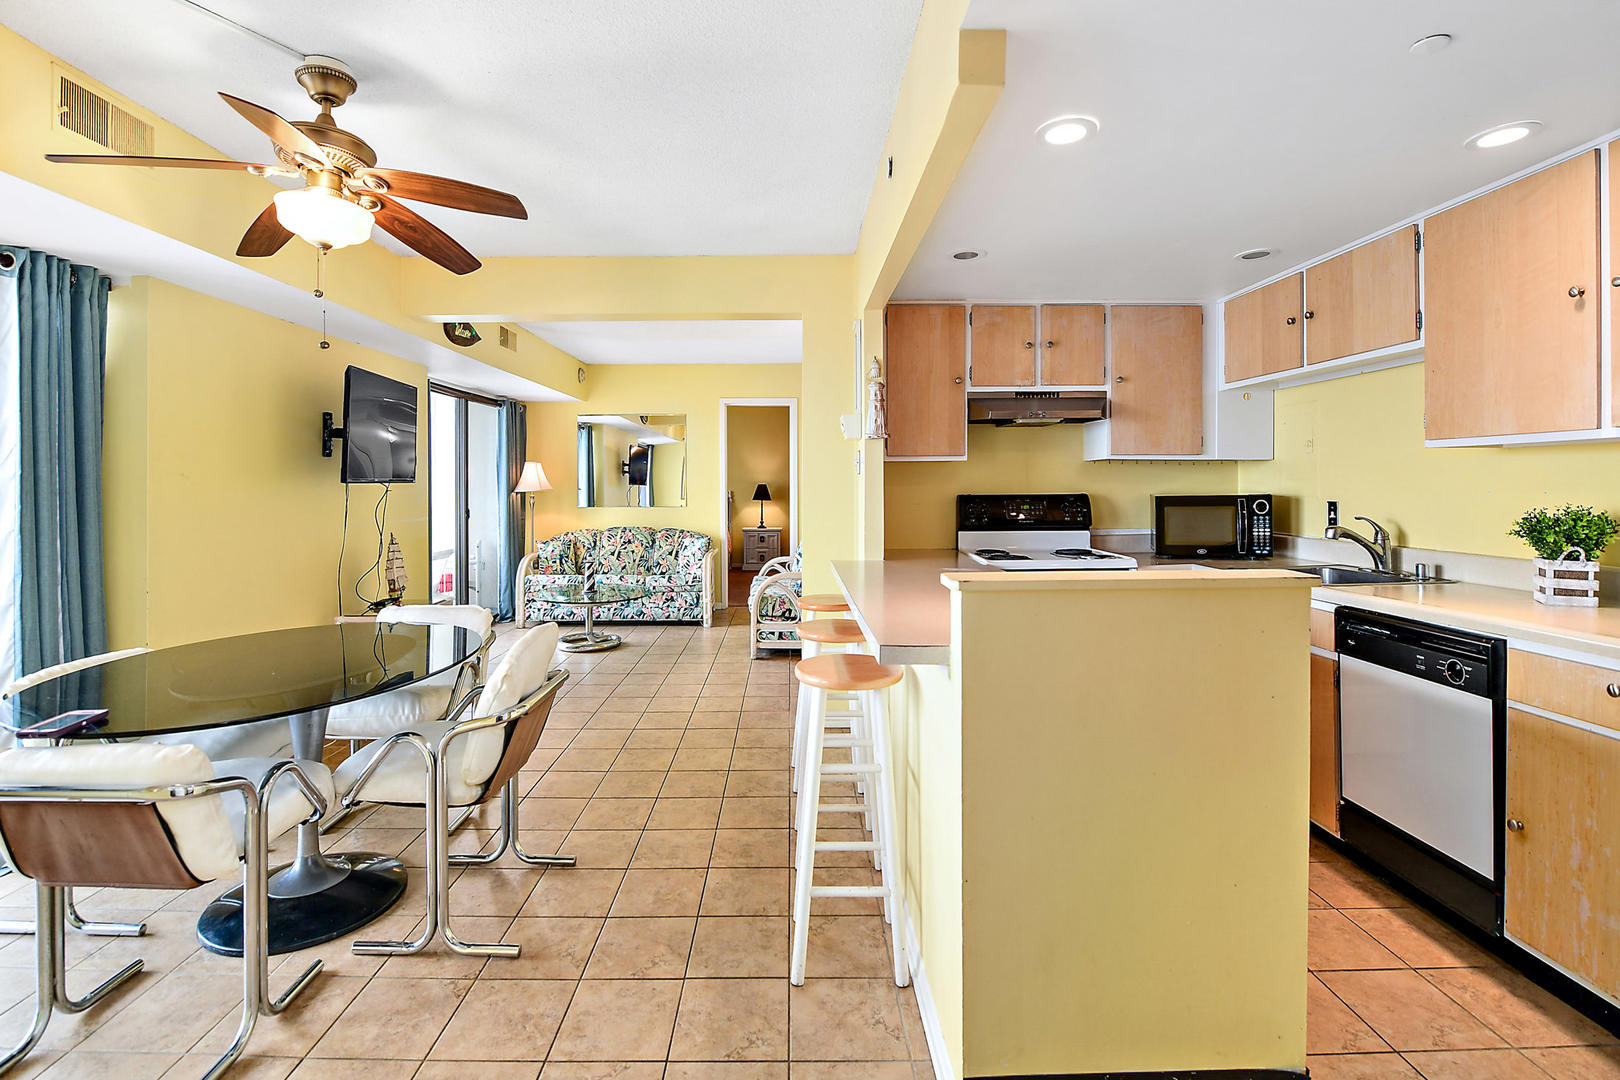 9400 Building Unit 701 - Kitchen and Dining Area